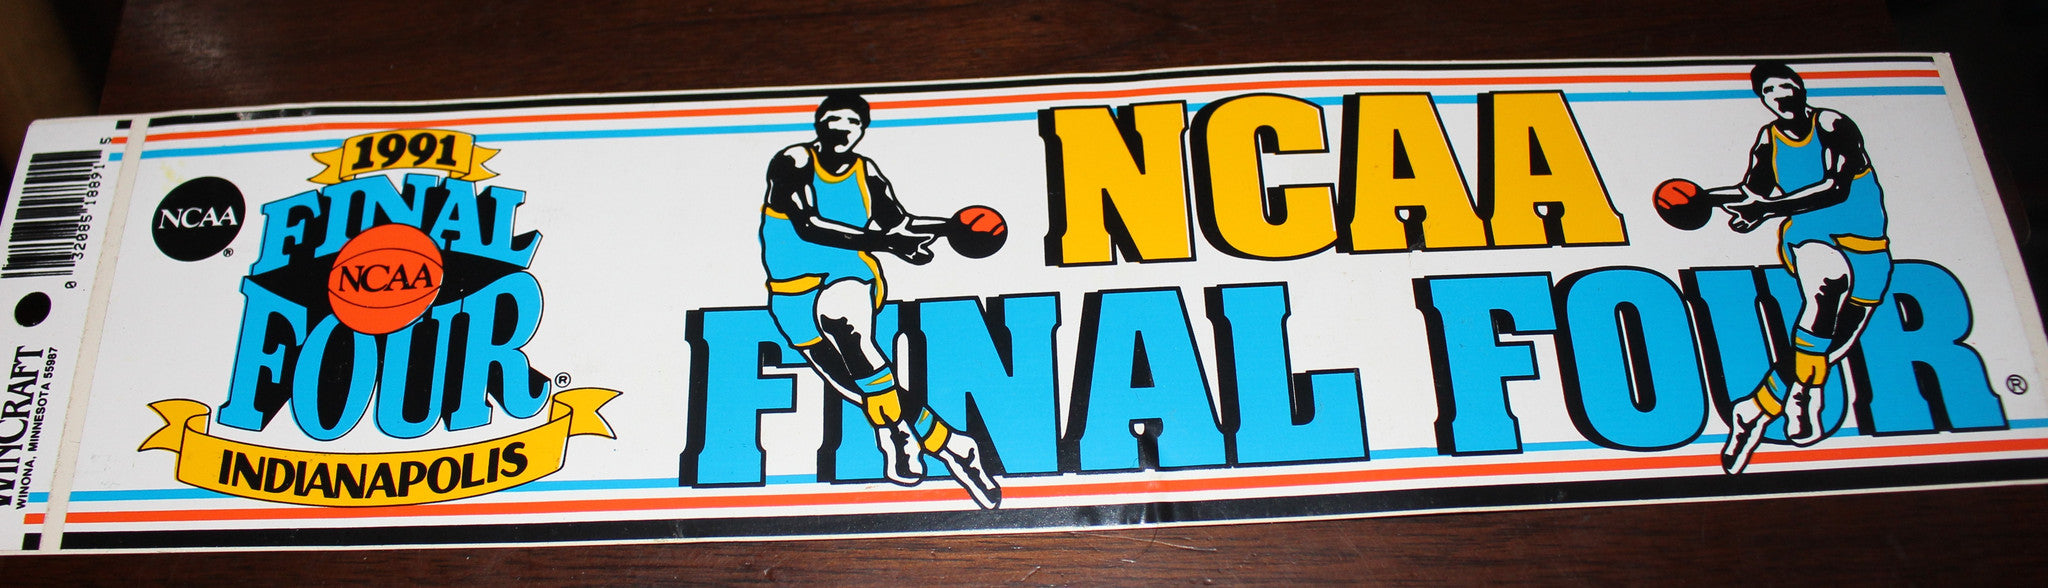 1991 NCAA Final Four Indianapolis Unused Bumper Sticker - Vintage Indy Sports